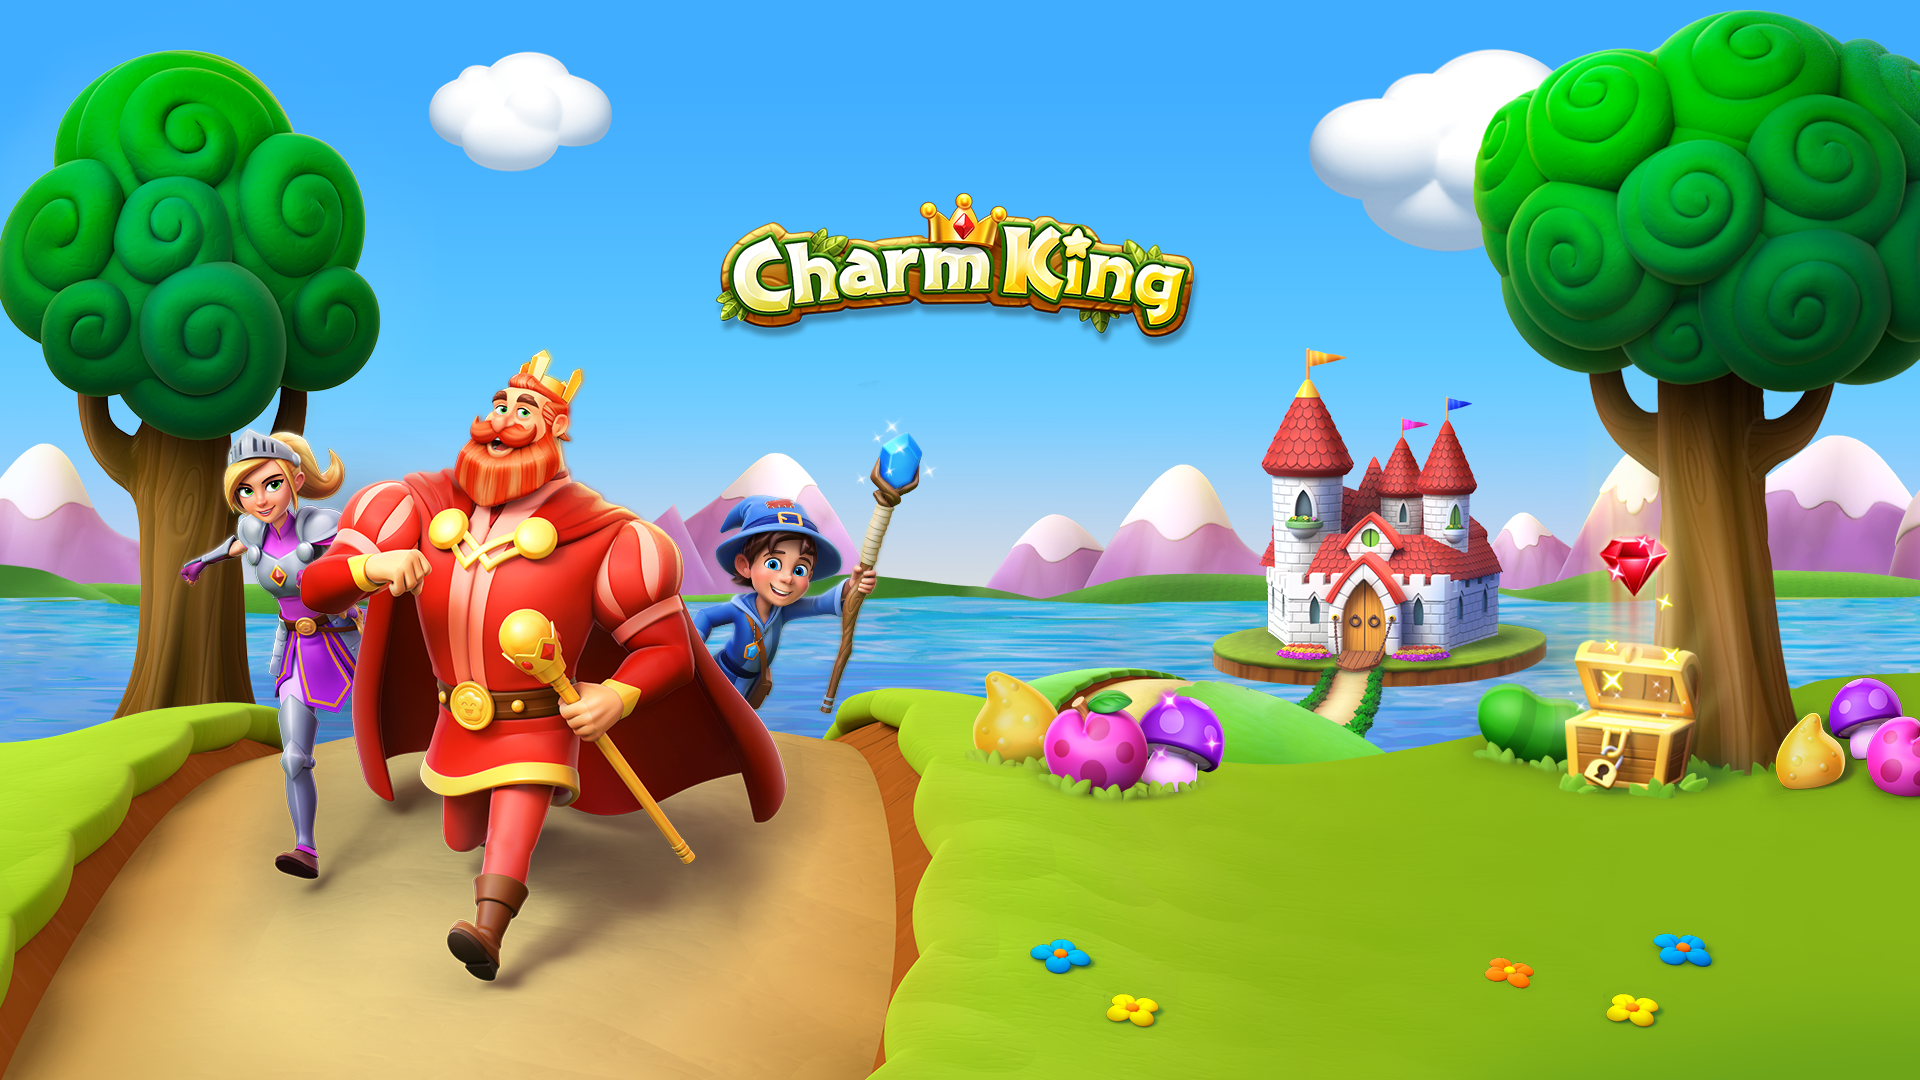 Charm King Screenshot Redesign (2019)